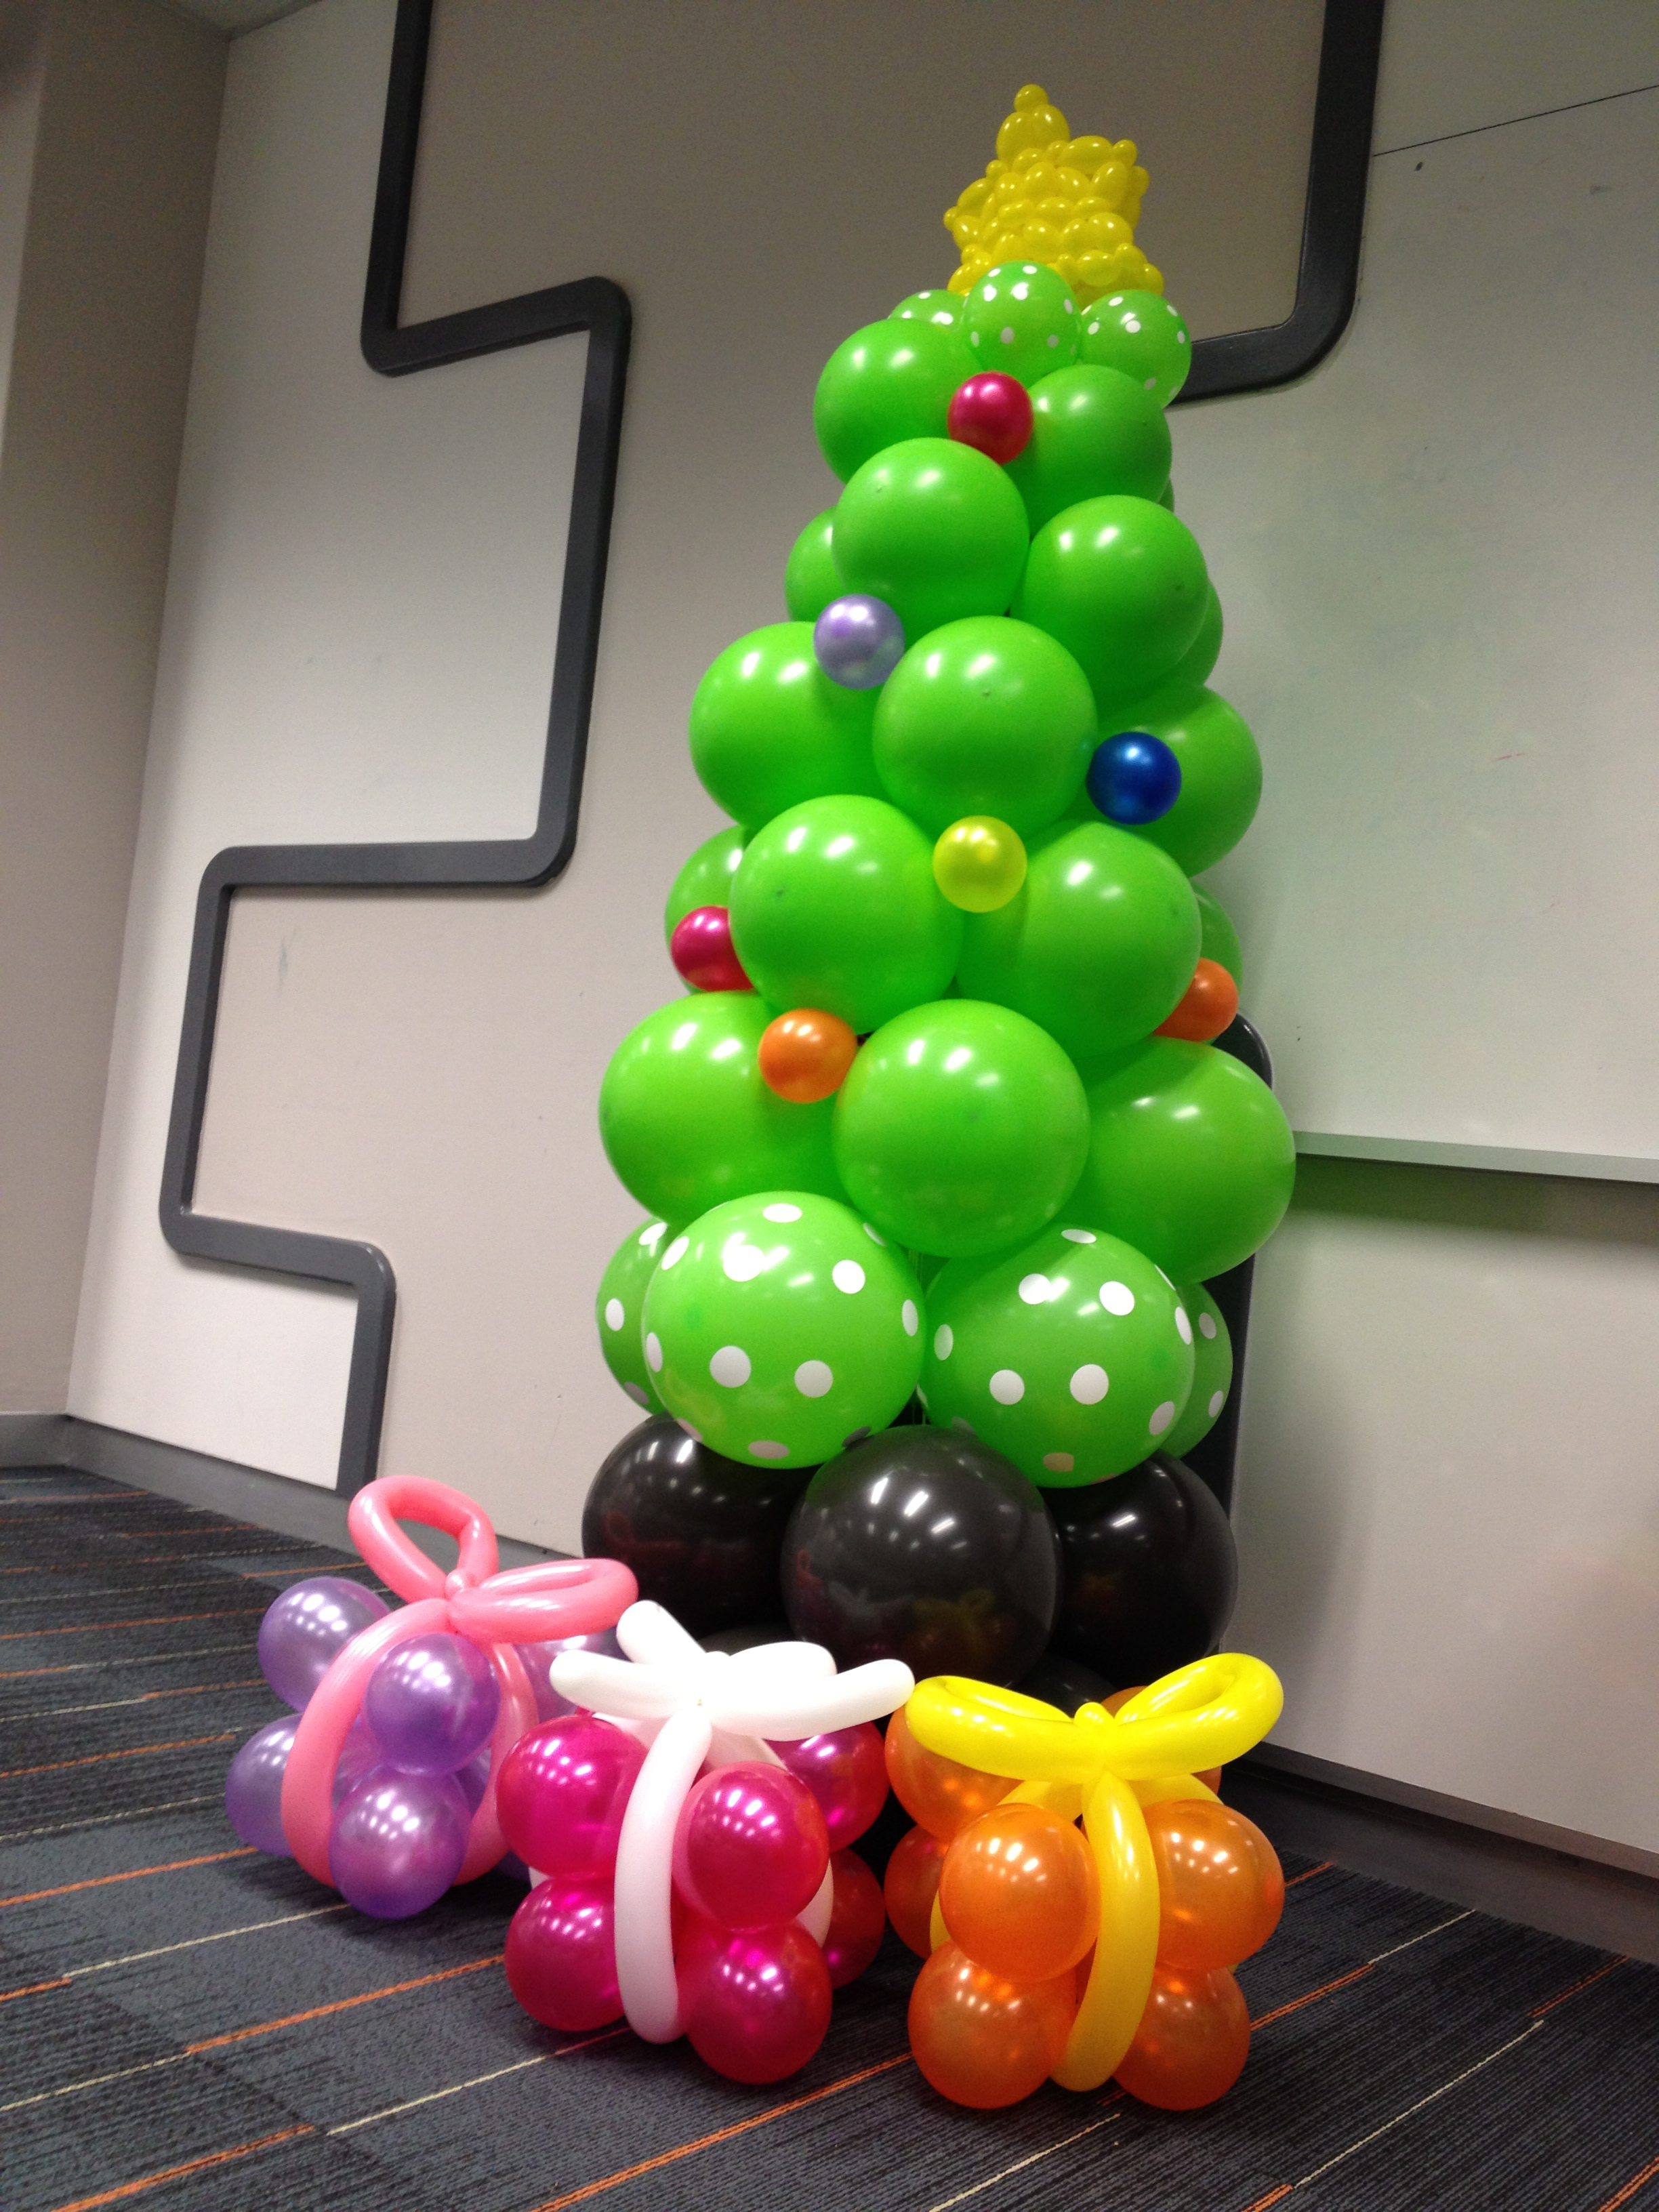 Christmas Tree Balloon.Balloon Christmas Tree That Balloons